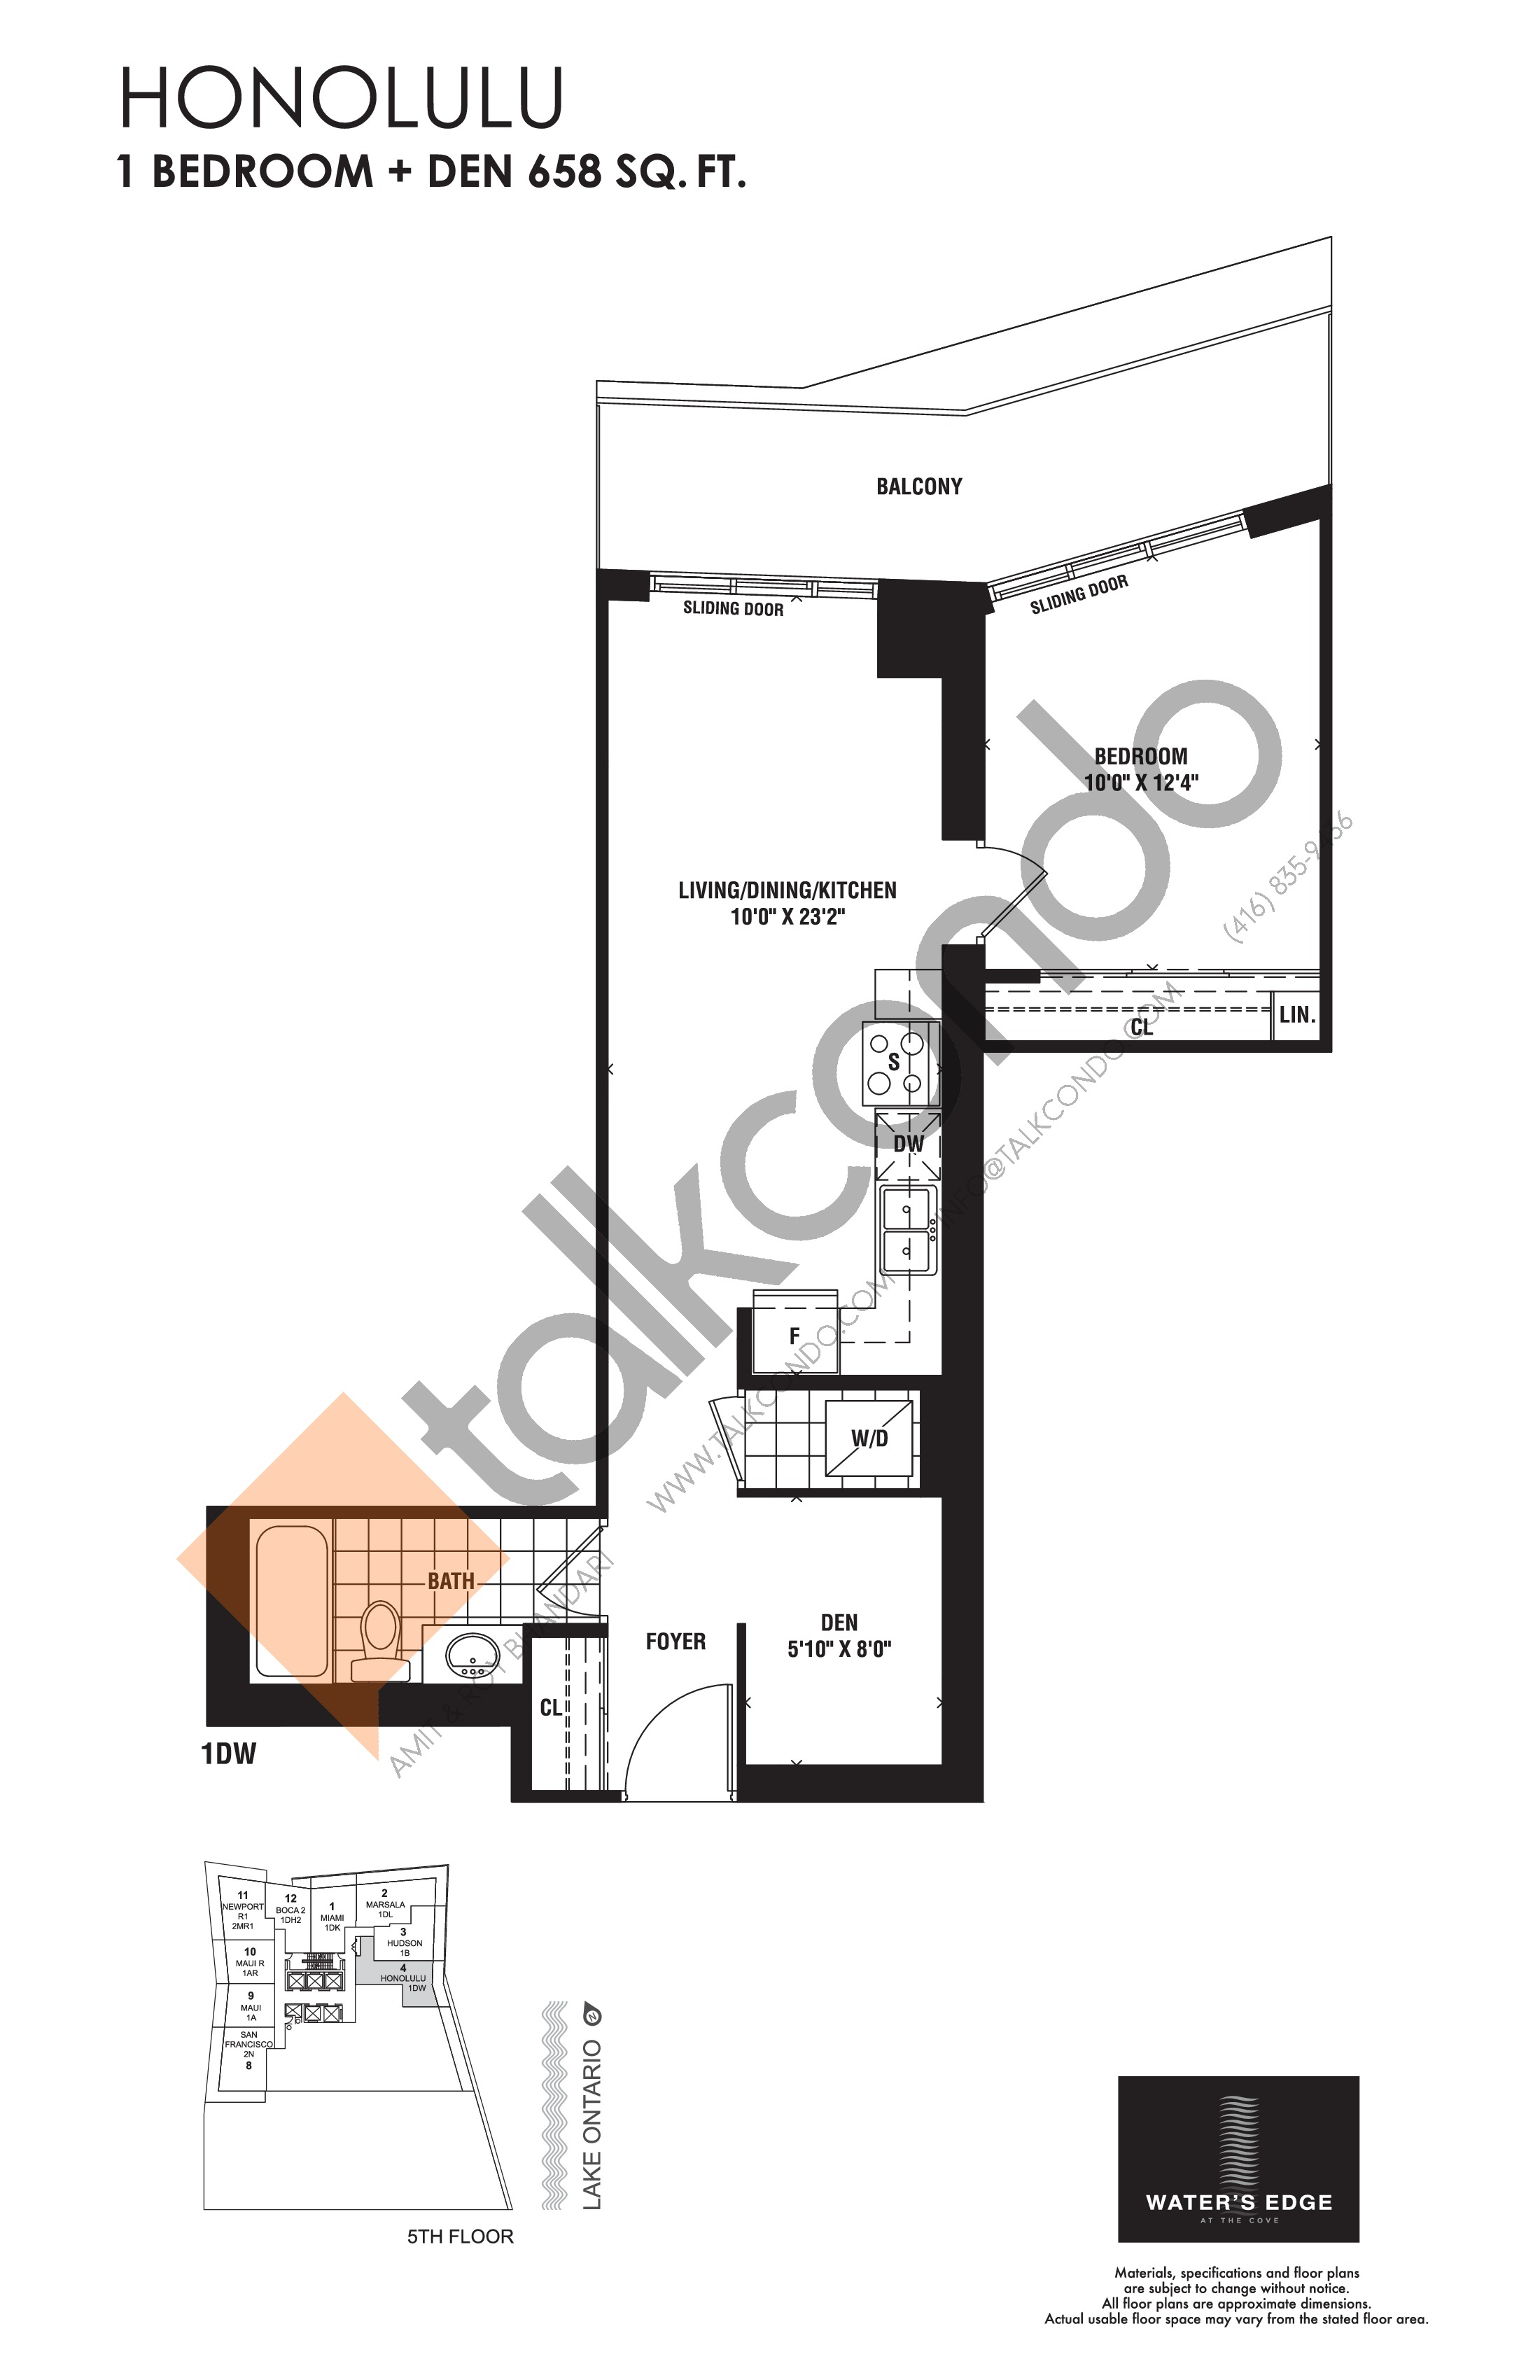 Honolulu Floor Plan at Water's Edge at the Cove Condos - 658 sq.ft